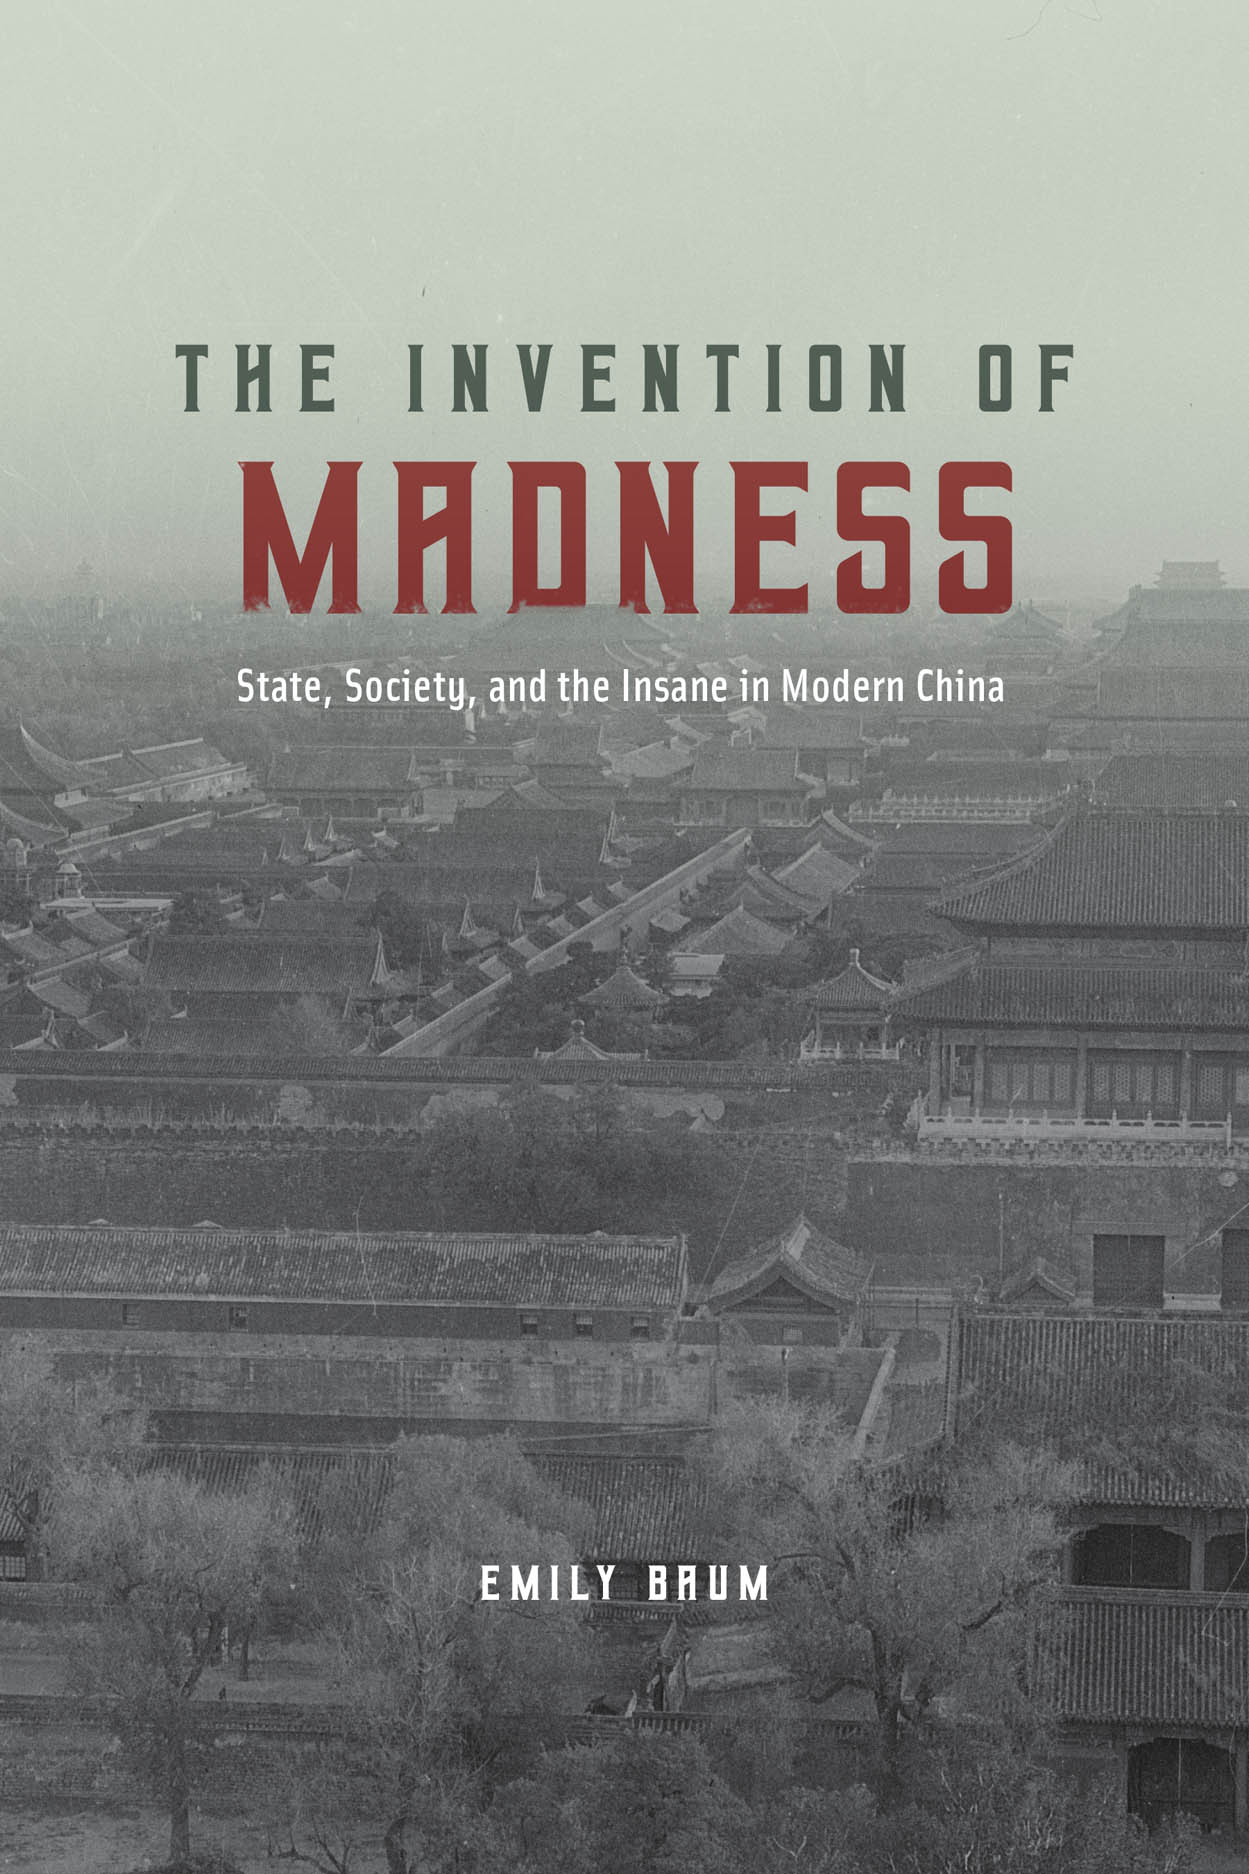 The Invention of Madness: State, Society, and the Insane in Modern China